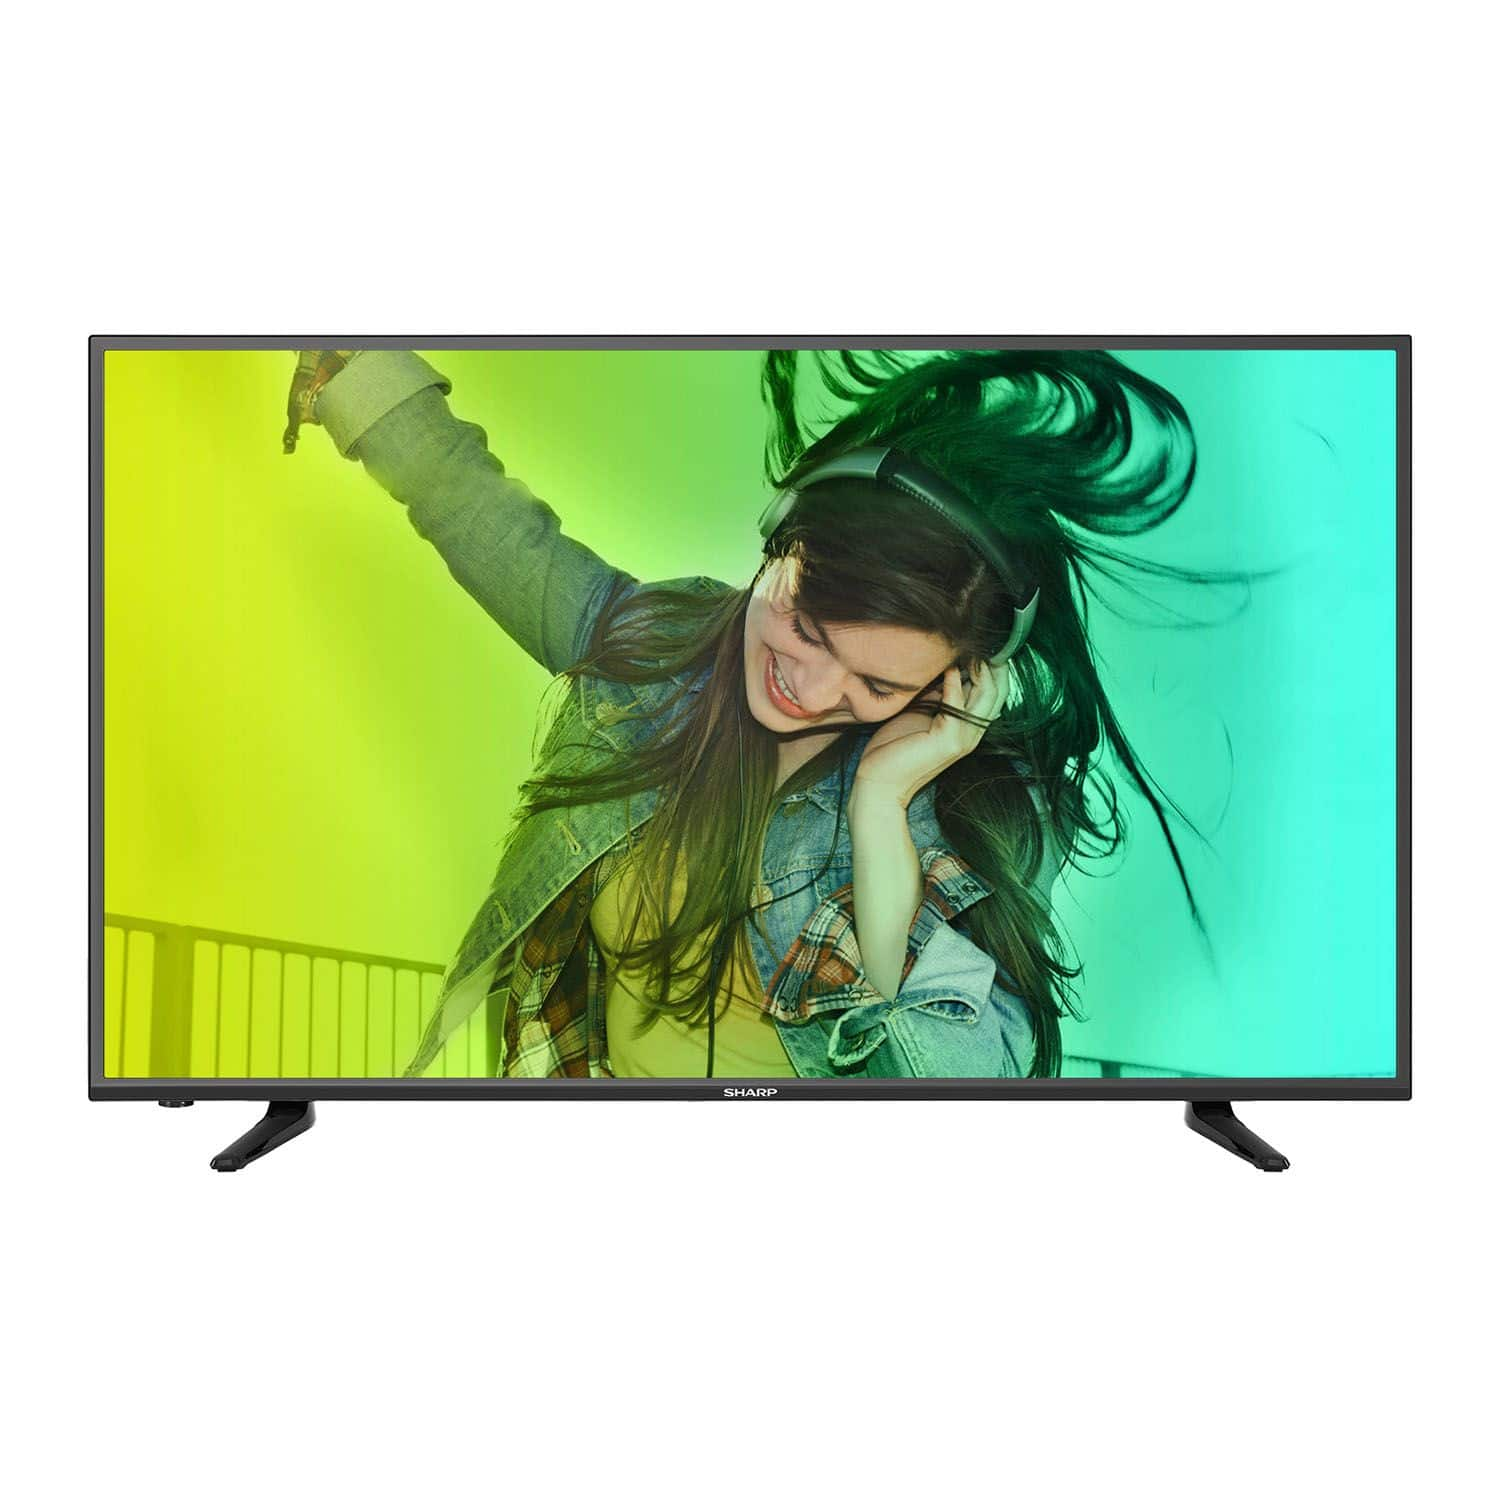 "43"" Sharp LC-43N6100U 4K Ultra HD LED Smart HDTV (2016 Model) $398 & More + Free Shipping @ Walmart"